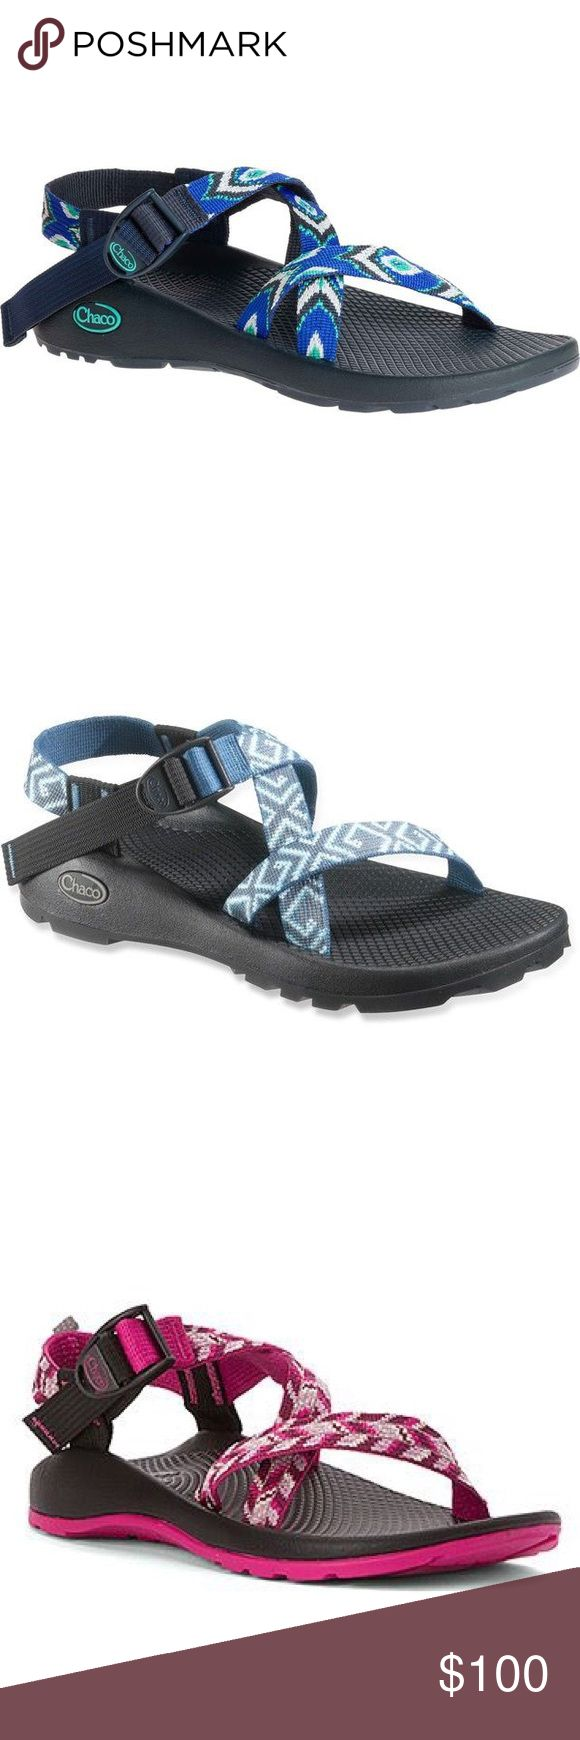 ISO CHACOS One strap no toe! Willing to trade anything and will pay up to possibly 60. I AM NOT SELLING. Size 8. Or size 6 kids. Chacos Shoes Sandals